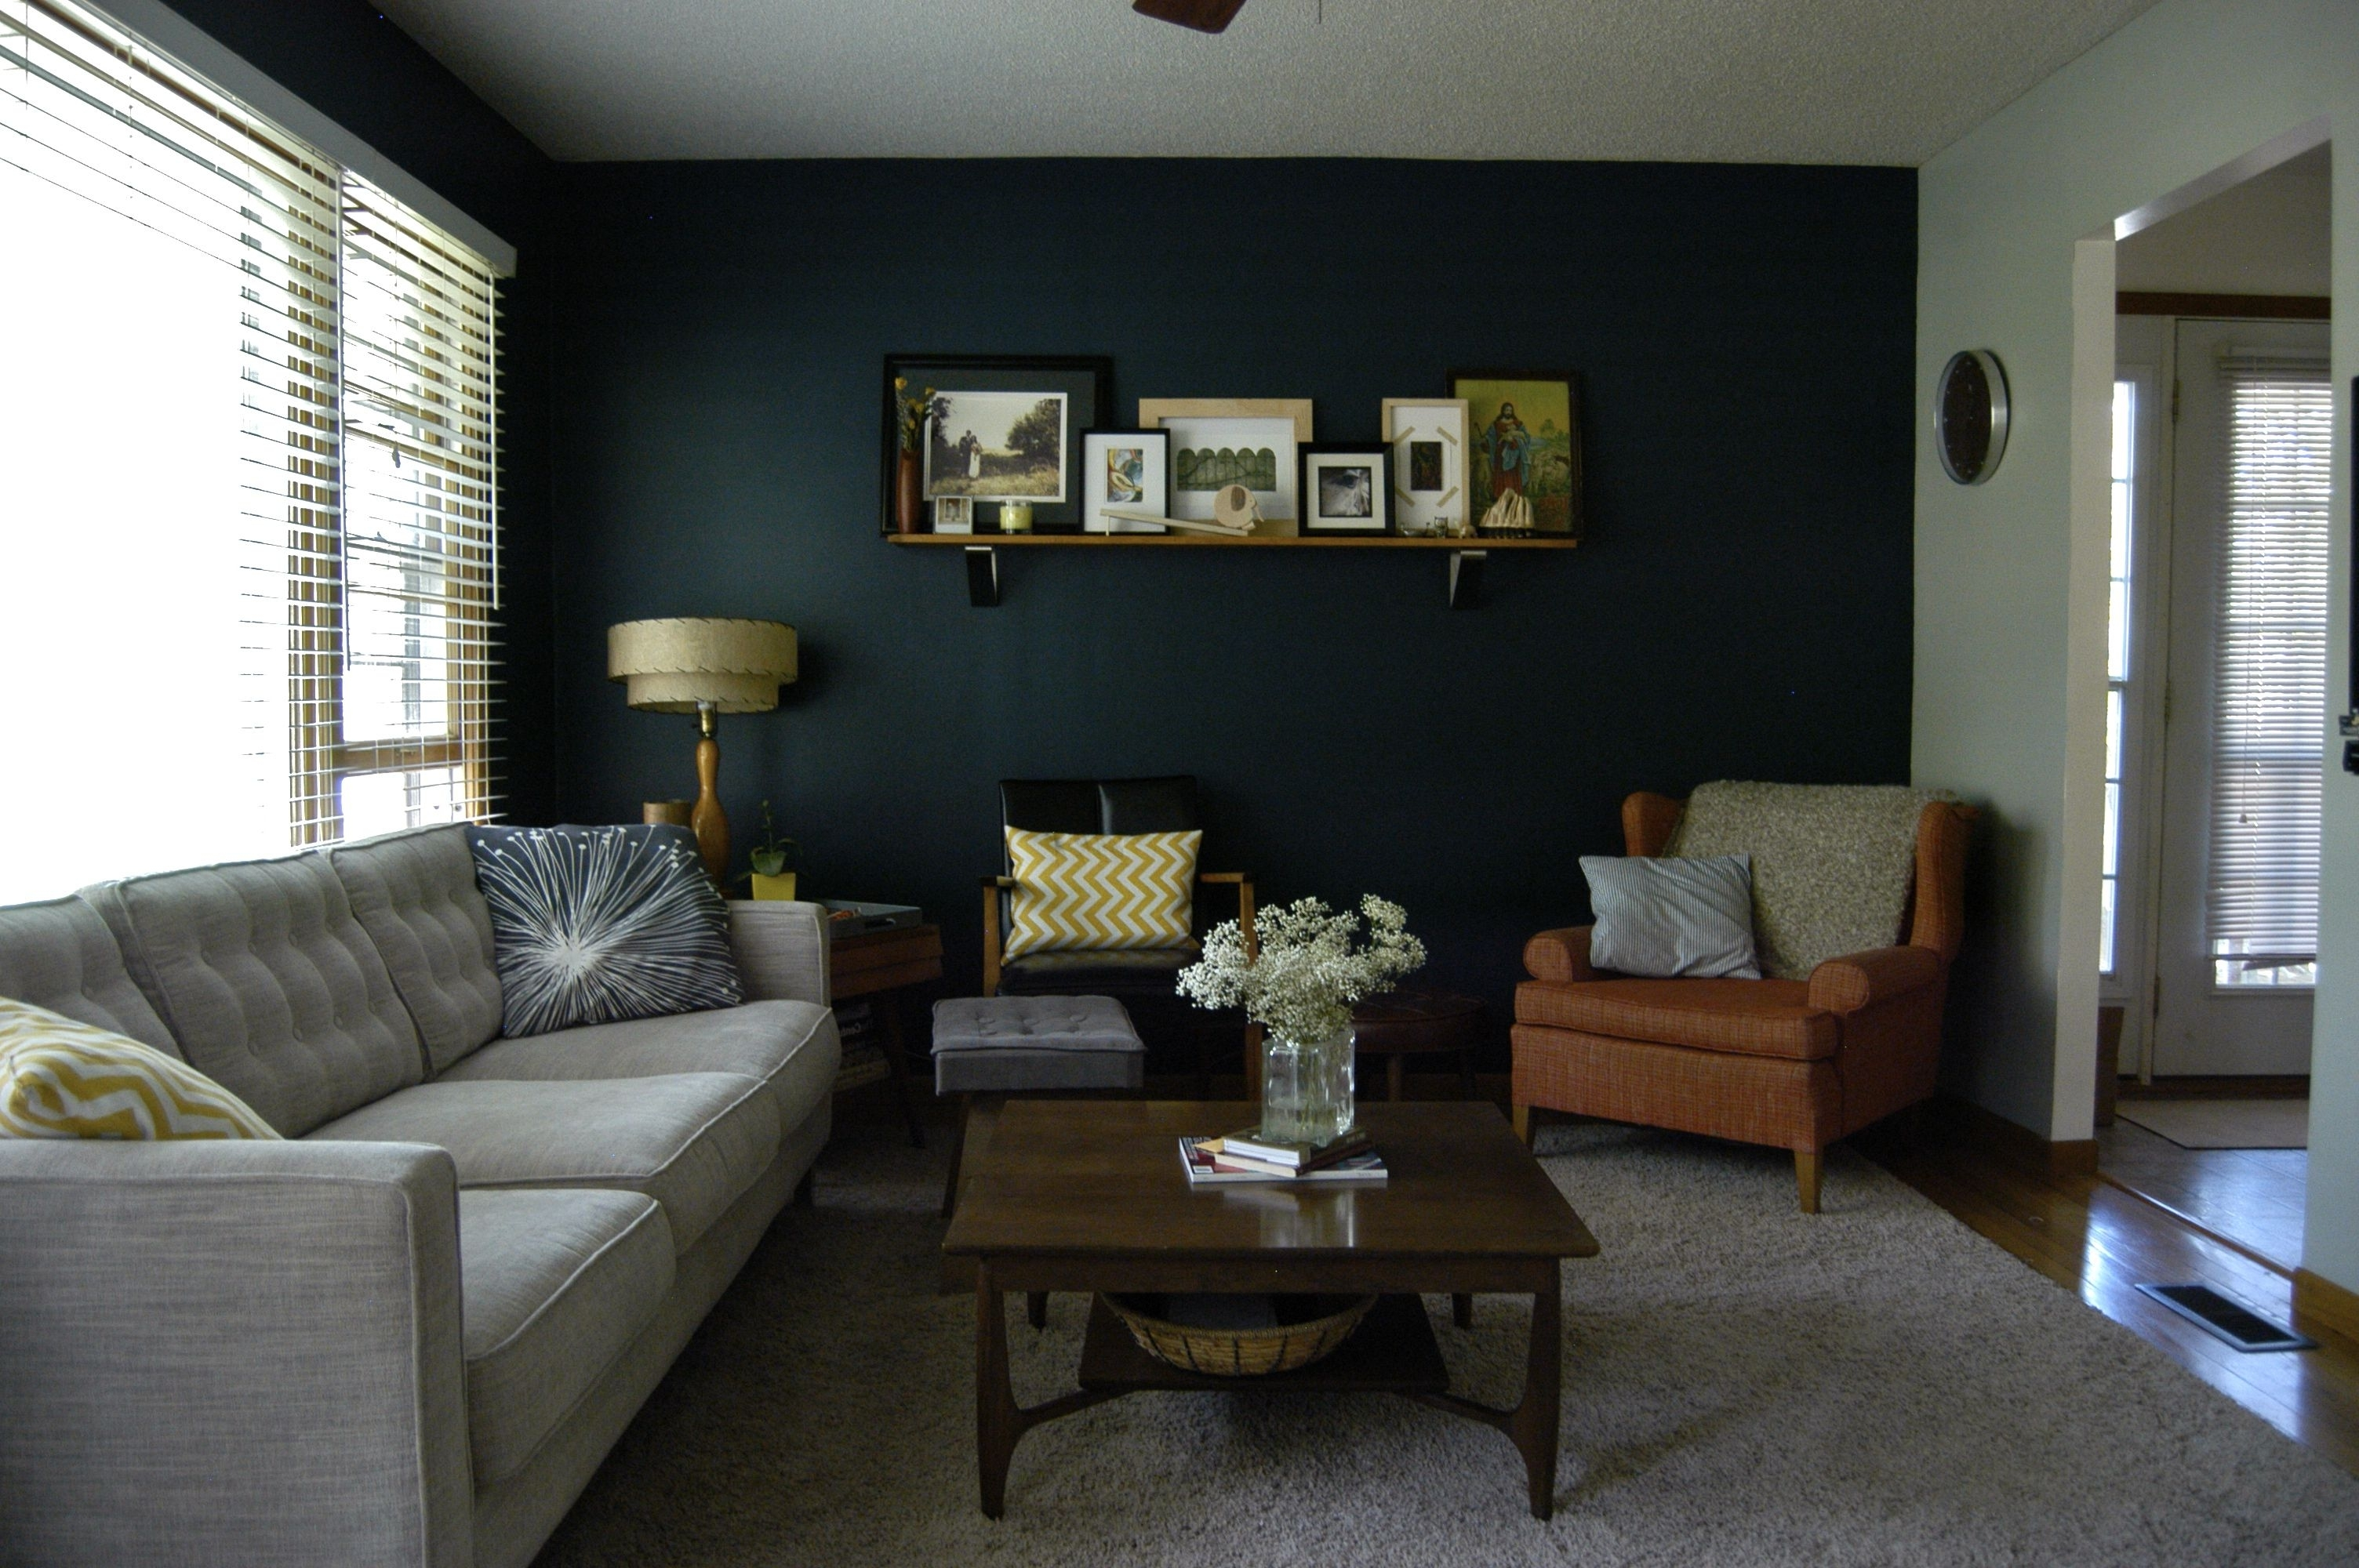 Trendy Our New Navy Accent Wall! The Other Walls Are A Medium Gray Within Gray Wall Accents (View 13 of 15)